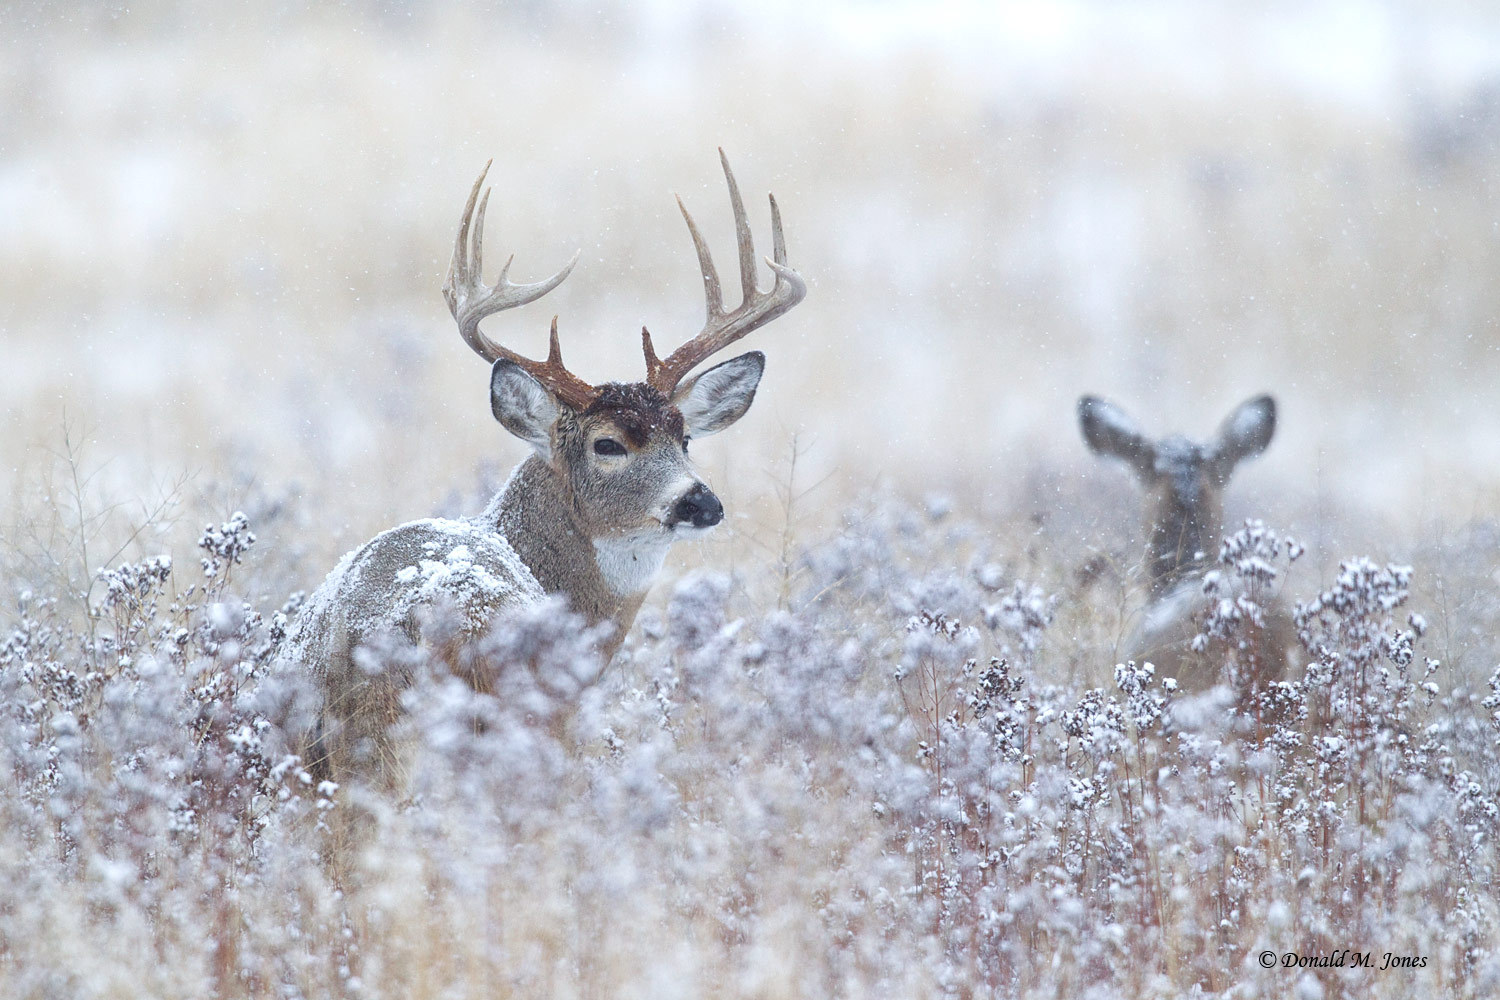 Hd Wallpapers Whitetail Deer 1600 X 1200 872 Kb Jpeg HD Wallpapers 1500x1000